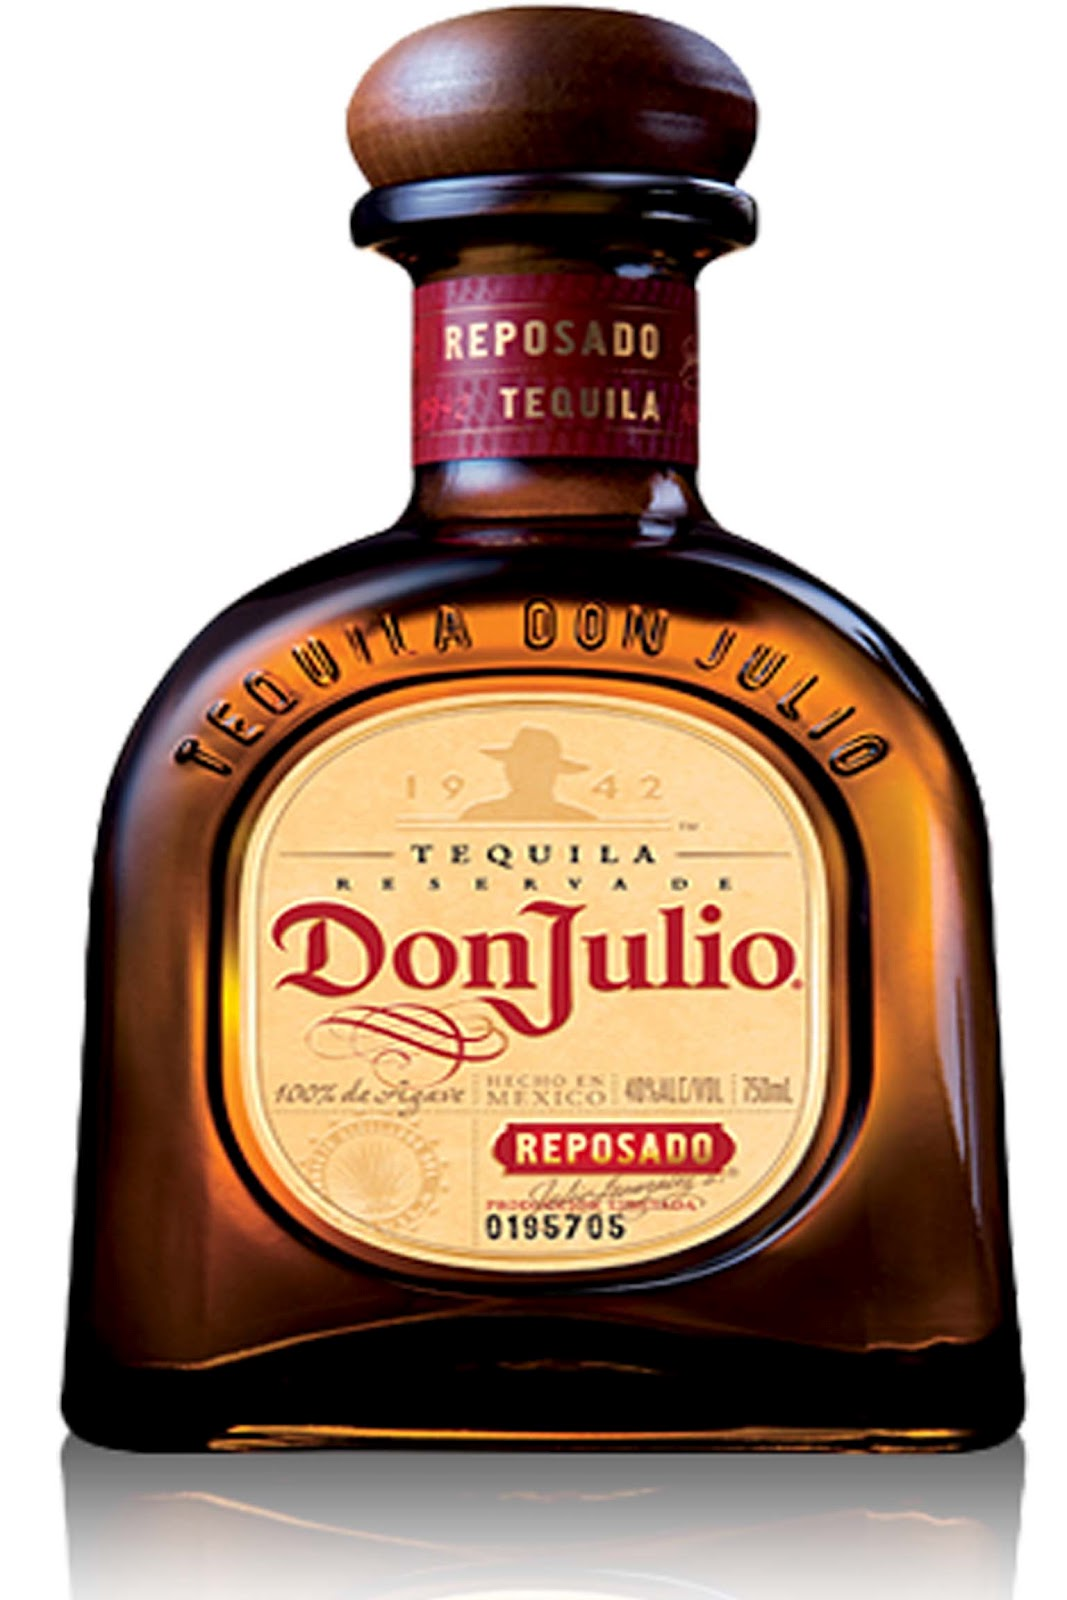 tequila_don_julio_reposado.jpg